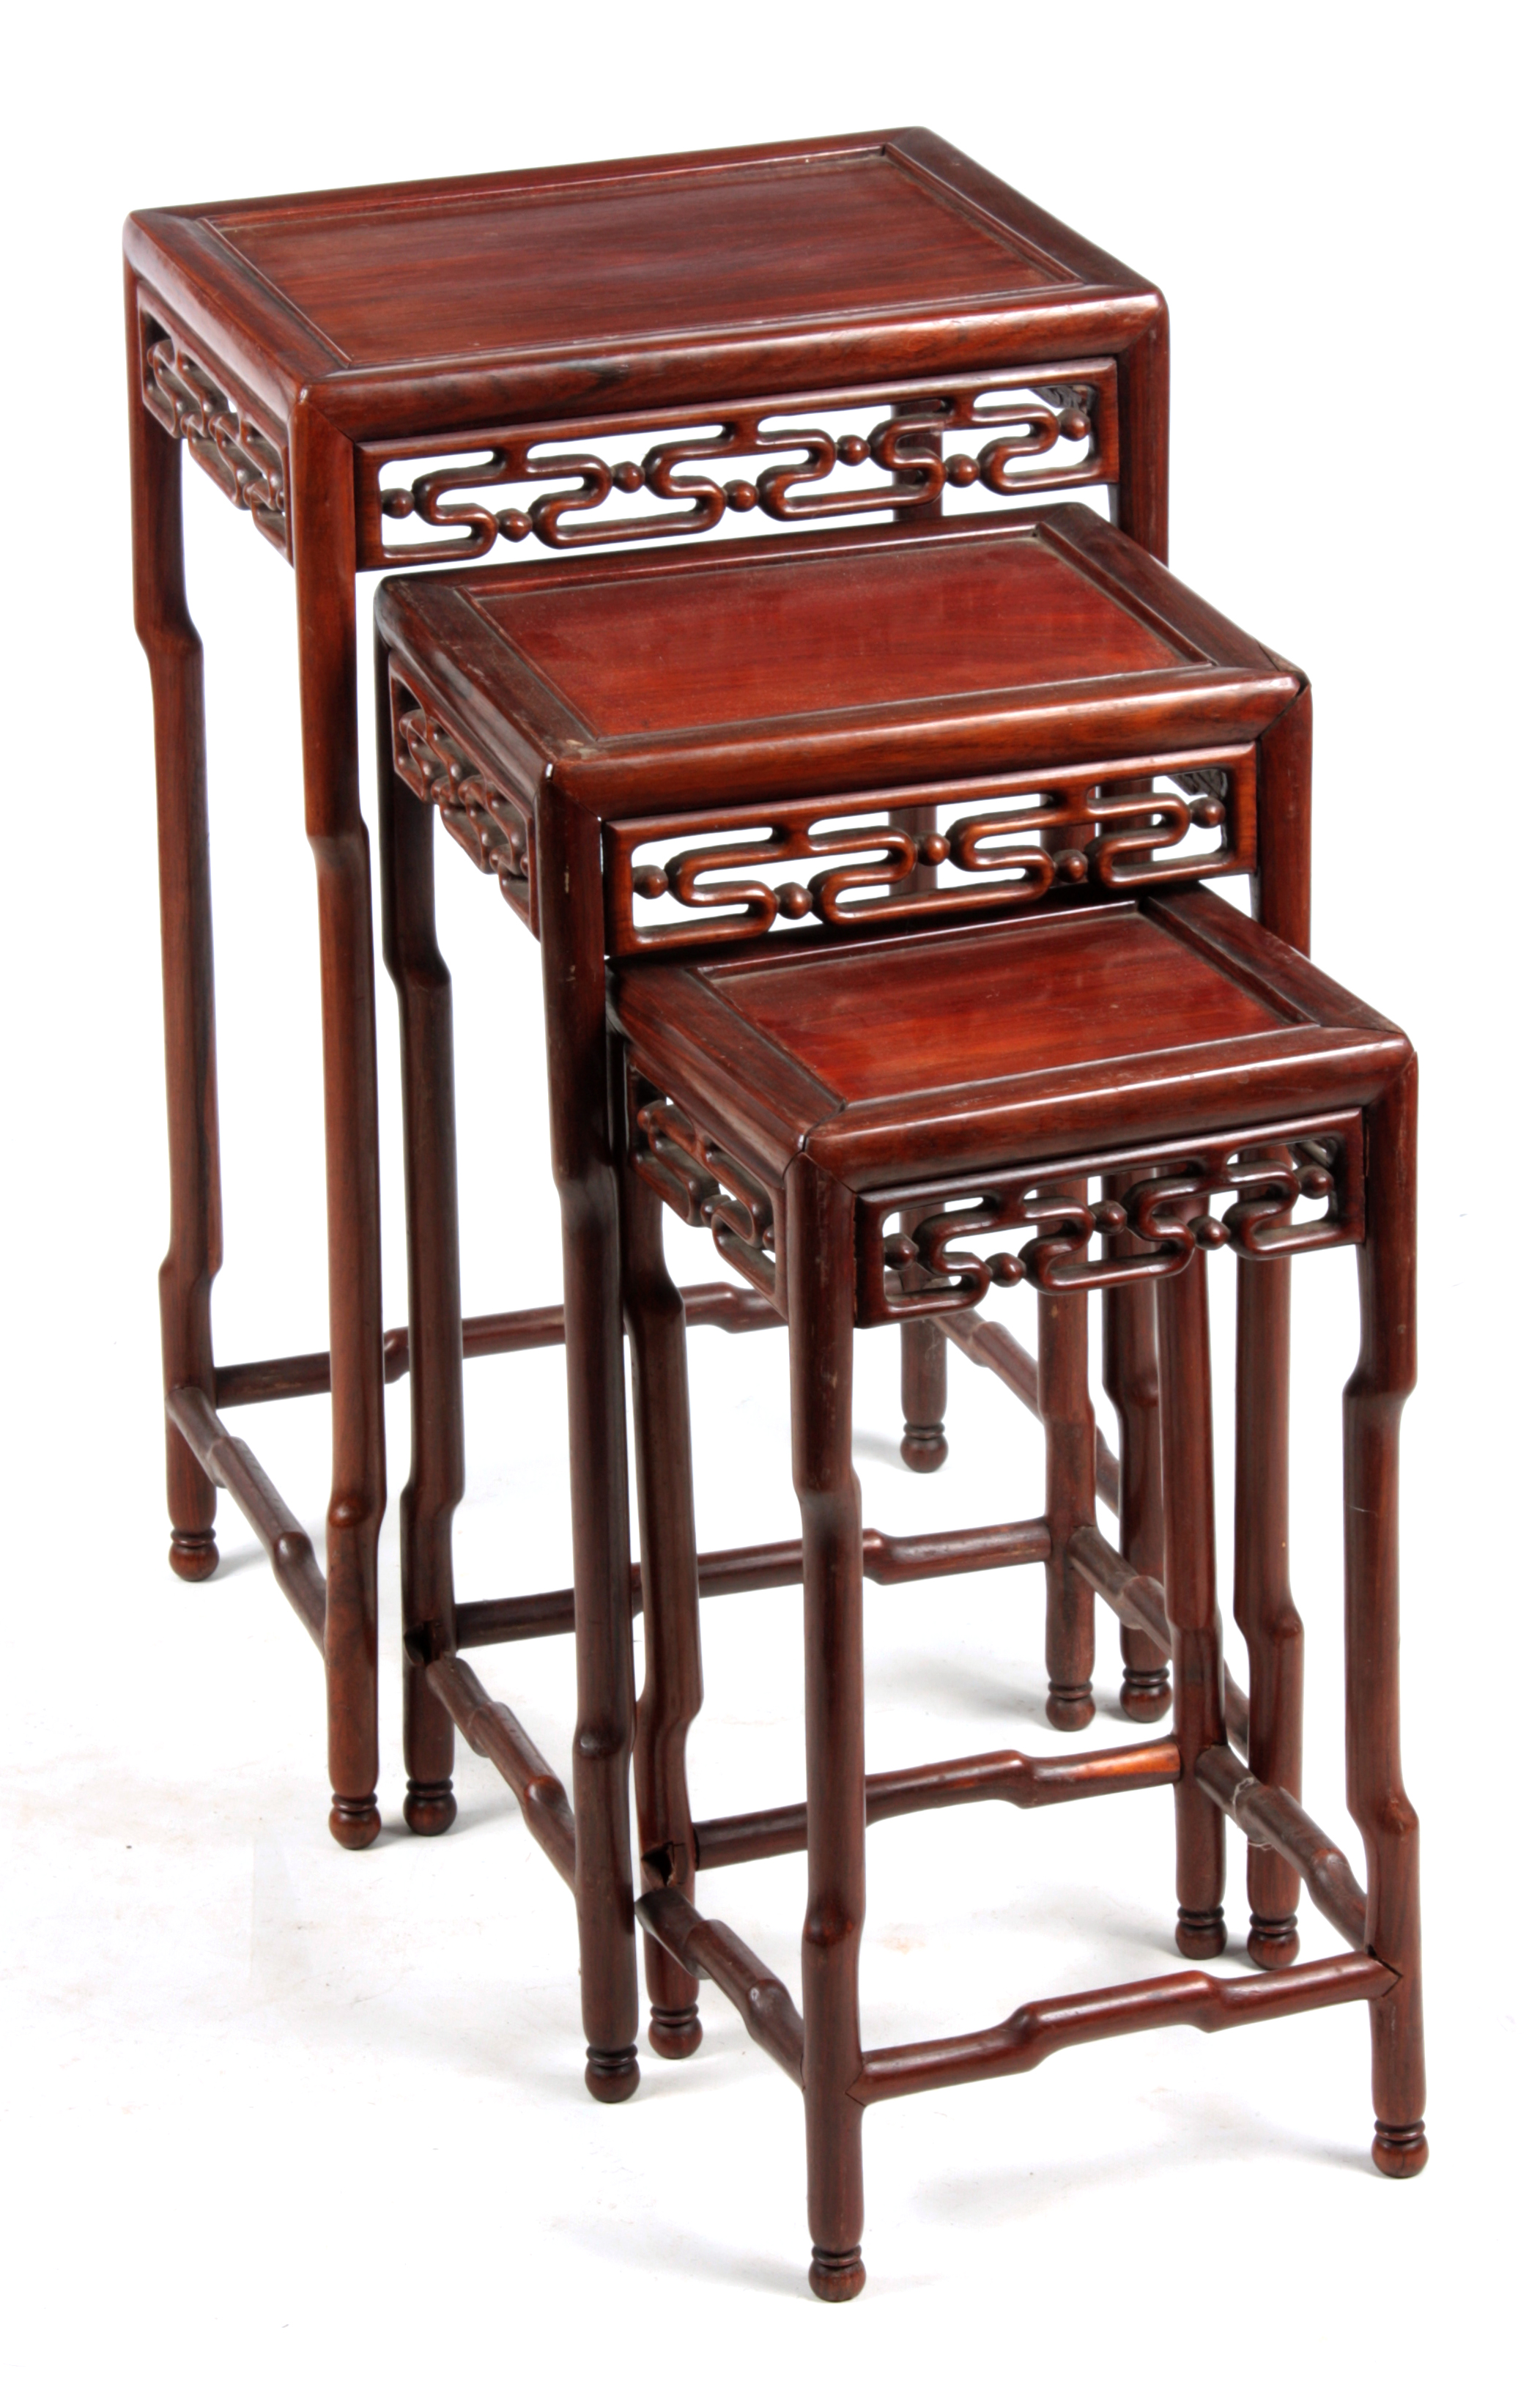 A 20TH CENTURY NEST OF THREE CHINESE HARDWOOD OCCASIONAL TABLES having shaped legs joined by pierced